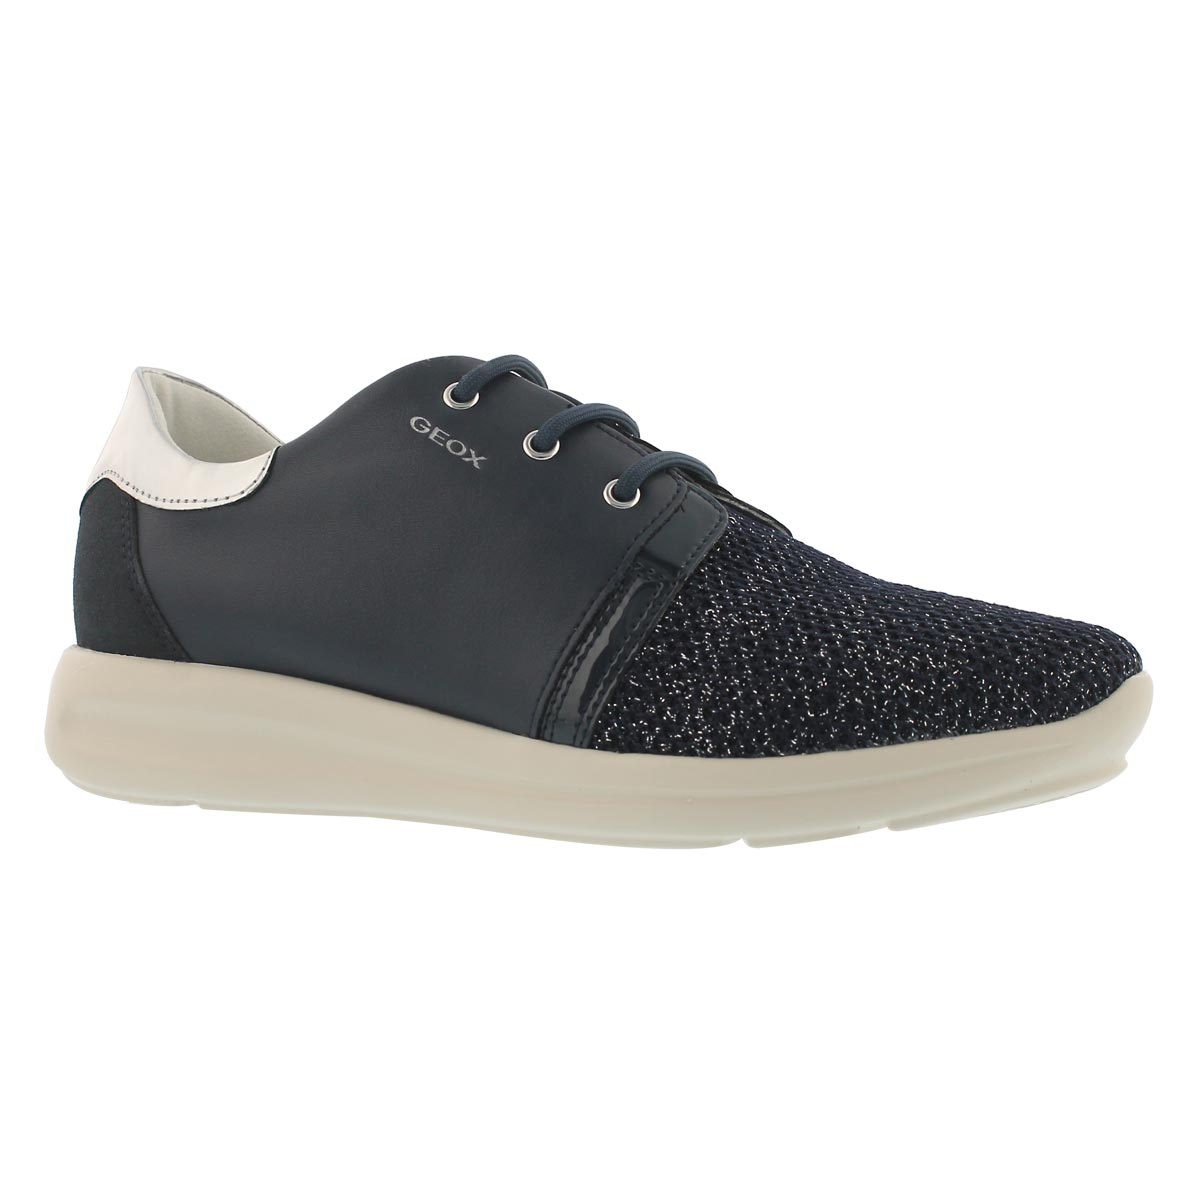 Women's AGYLEAH navy fashion sneakers